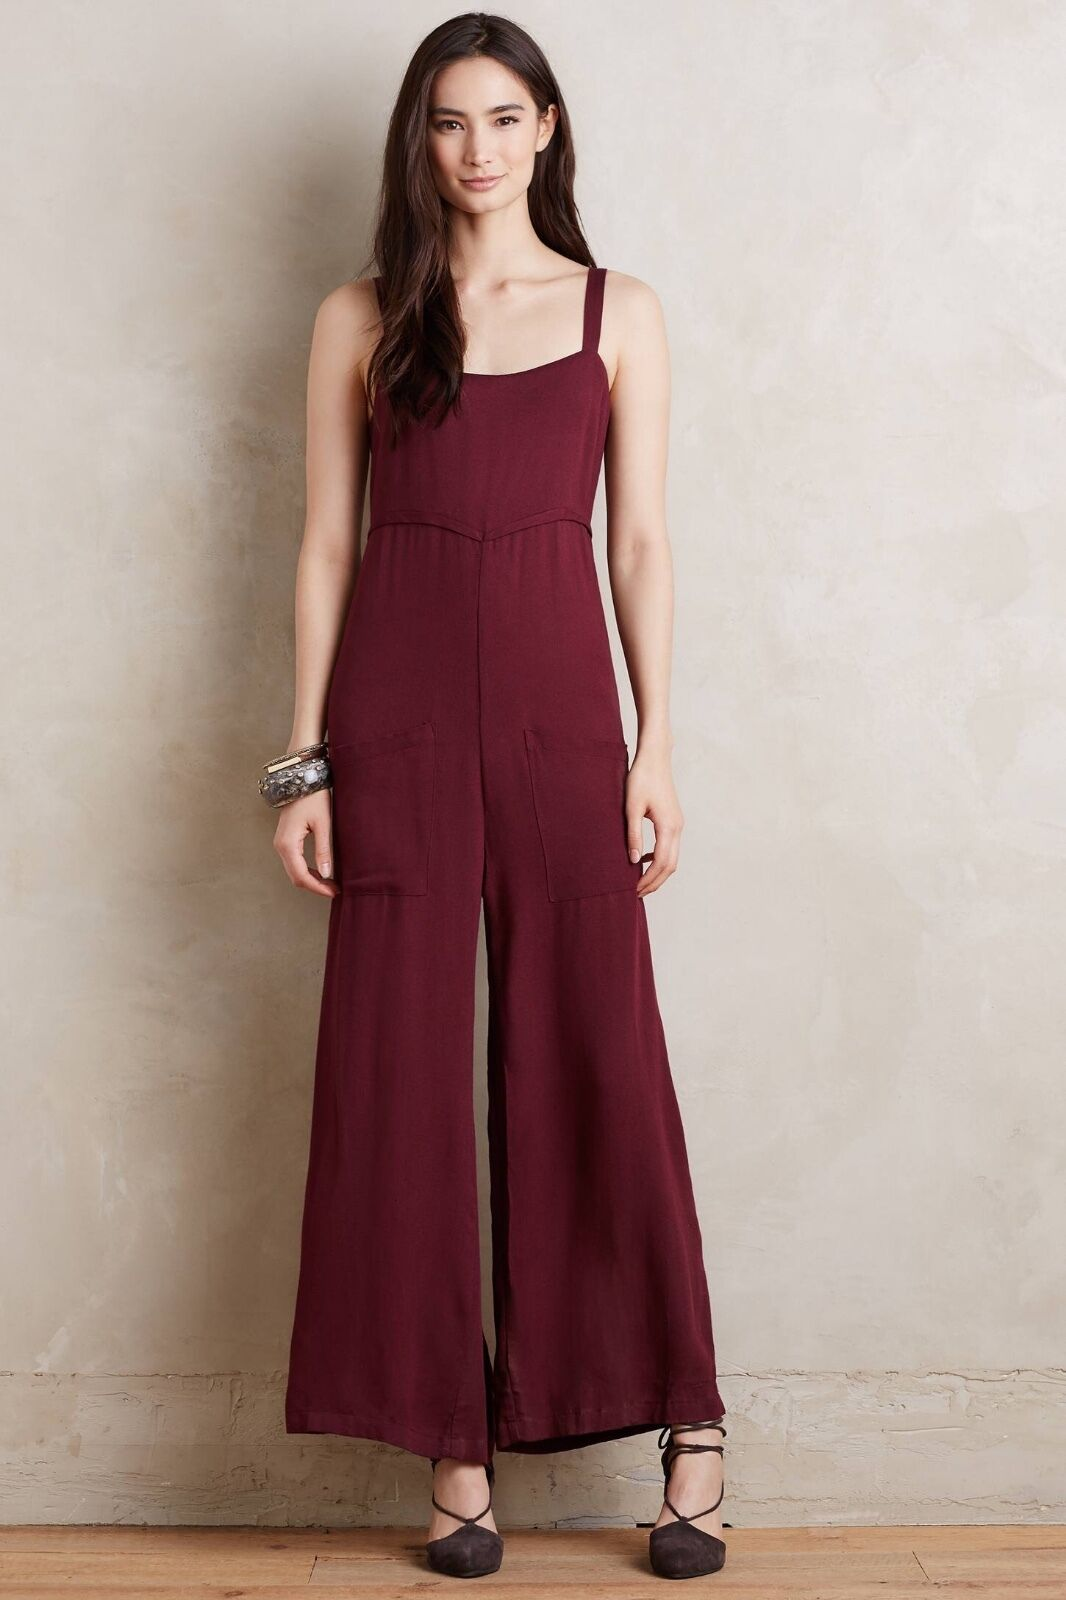 NWT NEW  Anthropologie Cleo Jumpsuit Large L  color Wine by Lacausa